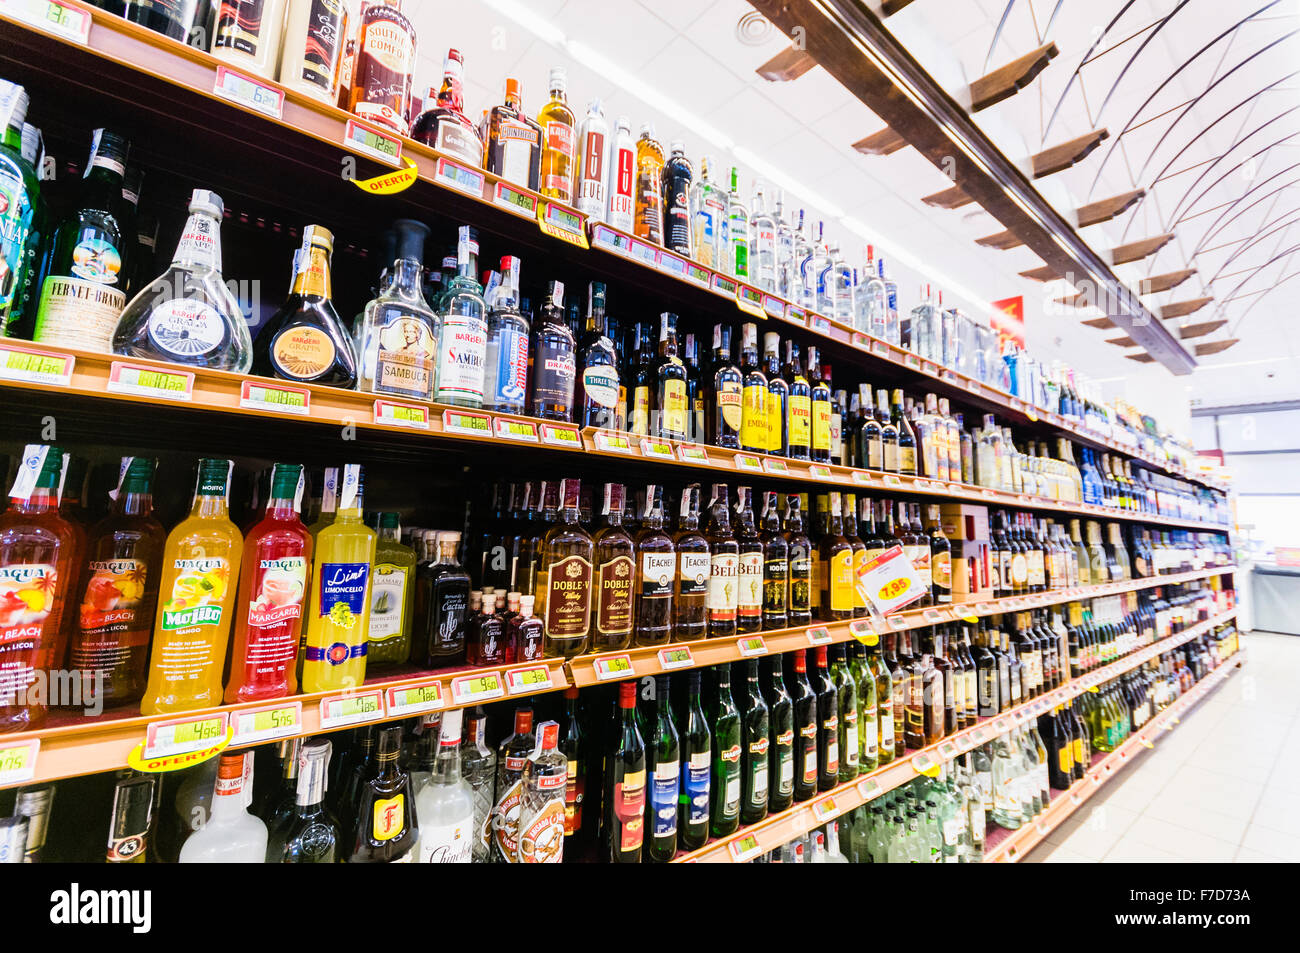 Shelves With Bottles Of Alcohol In A Spanish Supermarket In